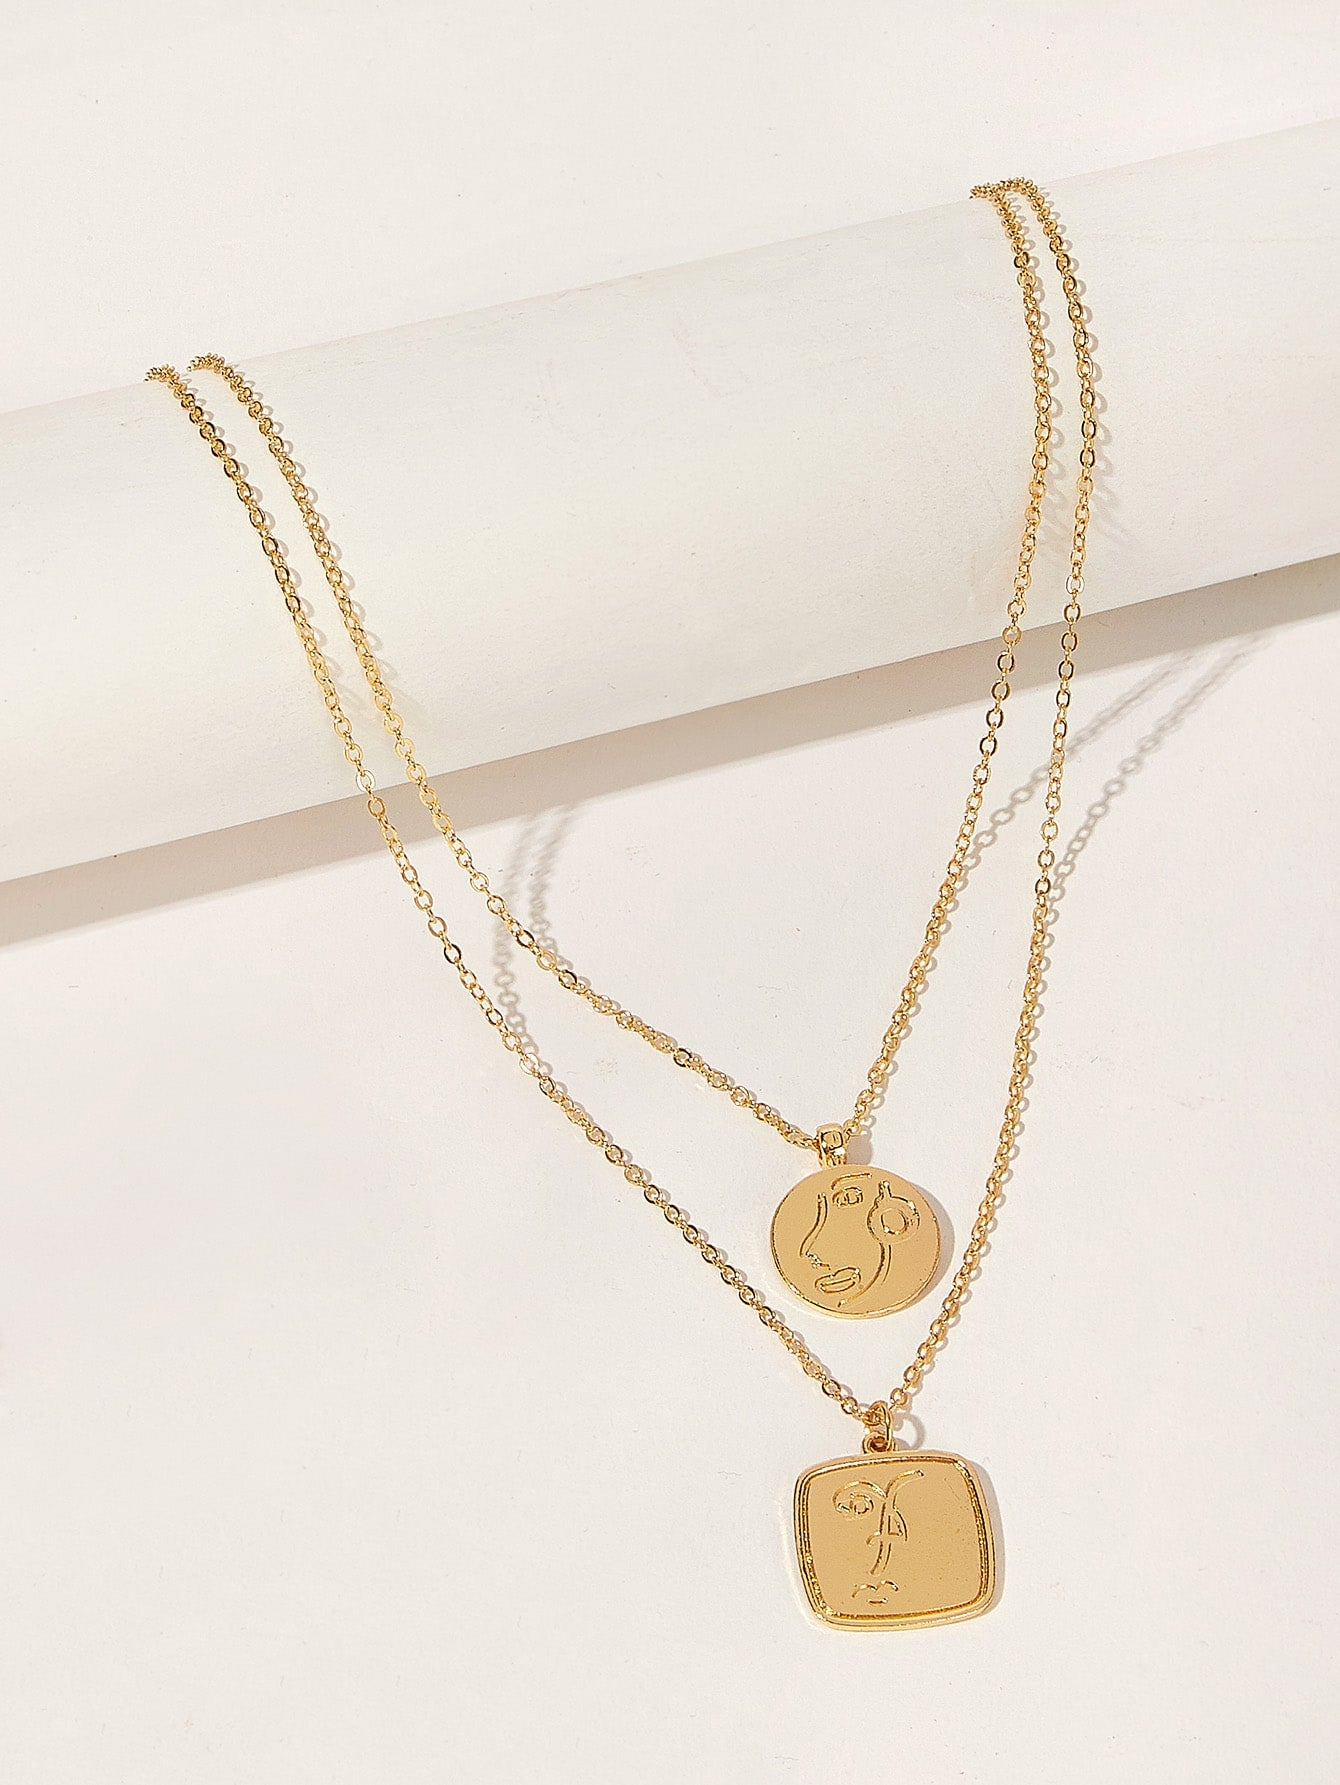 Golden Double Layered Engraved Round & Square Pendant 1pc Chain Necklace